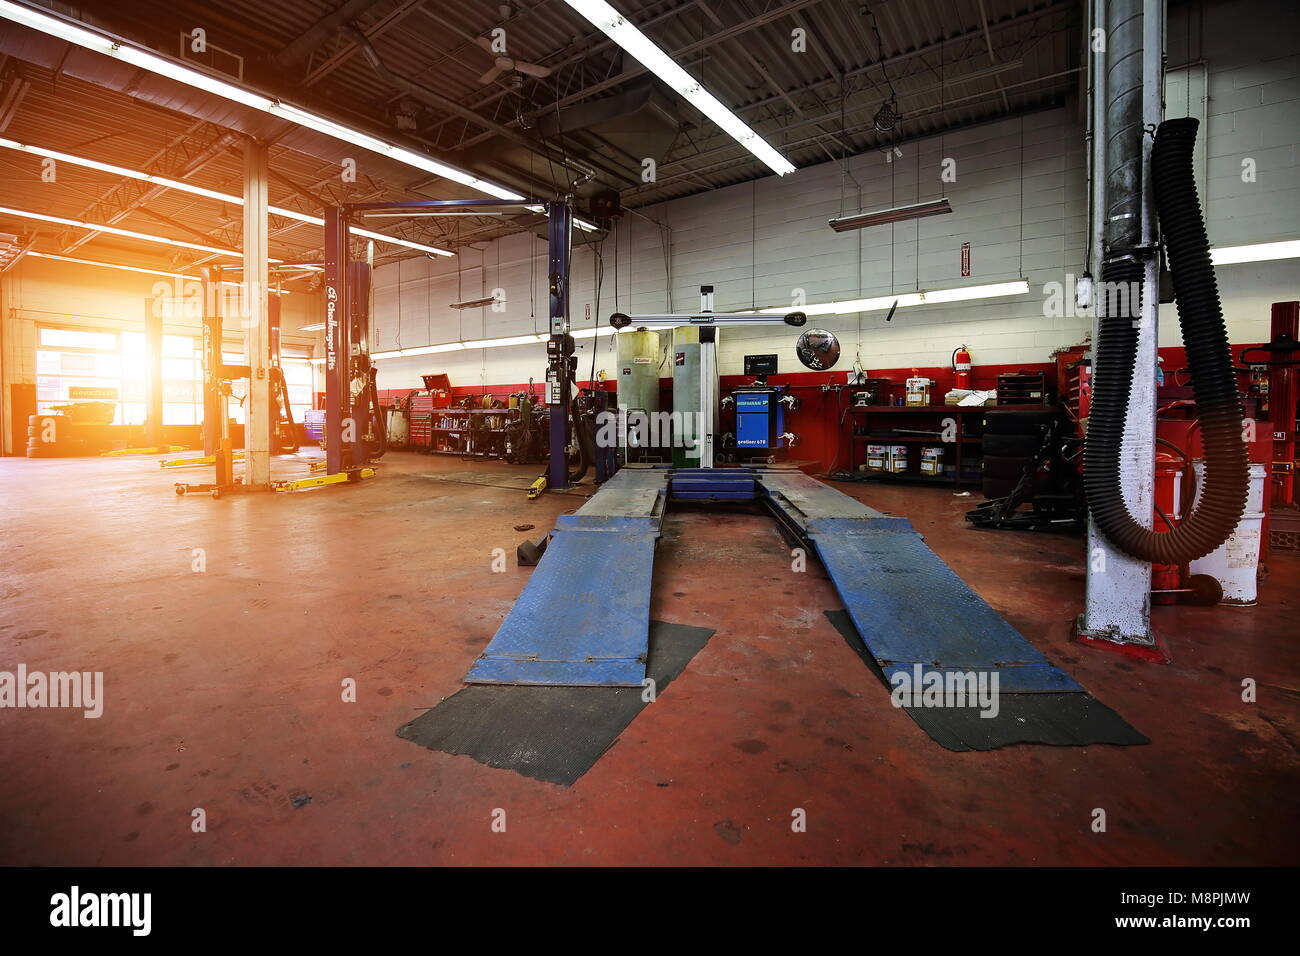 Garage Gym With Car Professional Car Repair Service In Downtown Garage Stock Photo